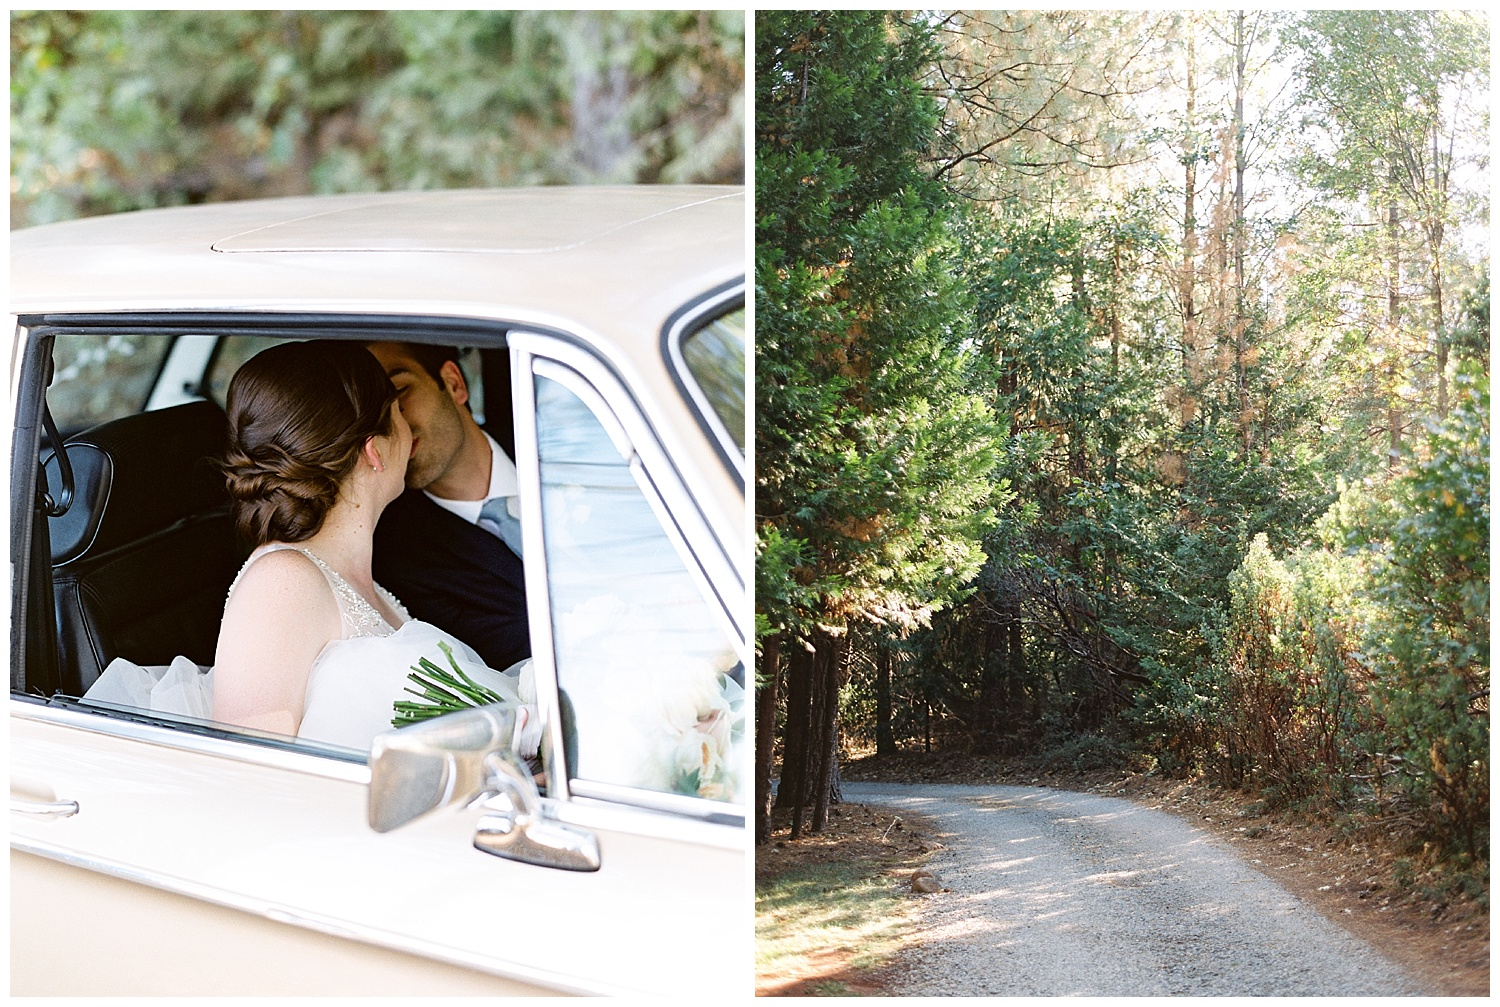 Forest-house-lodge-wedding-foresthill-california-28.jpg